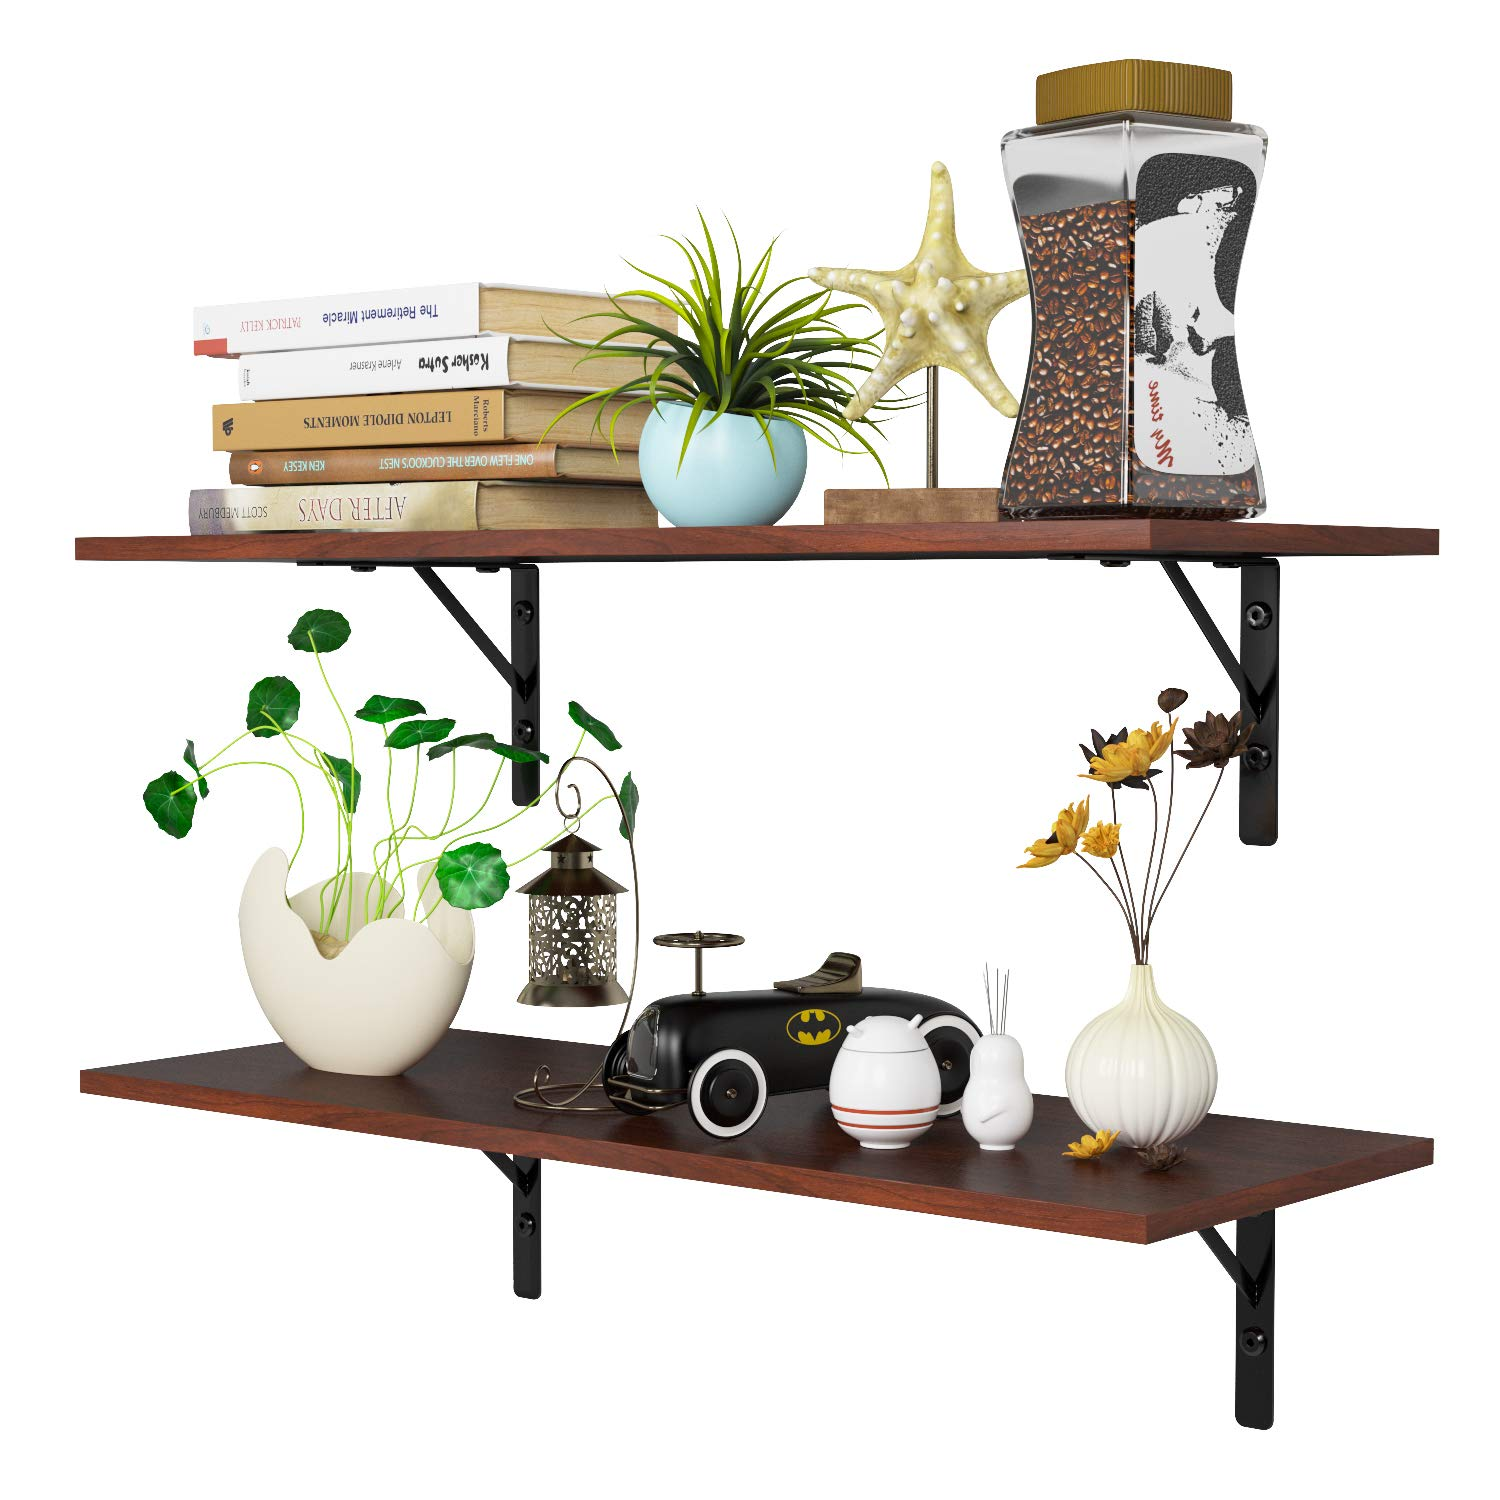 Homfa Floating Shelves Wall-Mounted Display Storage Ledge with Bracket for Bathroom, Kitchen, Living Room, Bedroom, Large 31.5X 11.6X 7.3in (Espresso) by Homfa